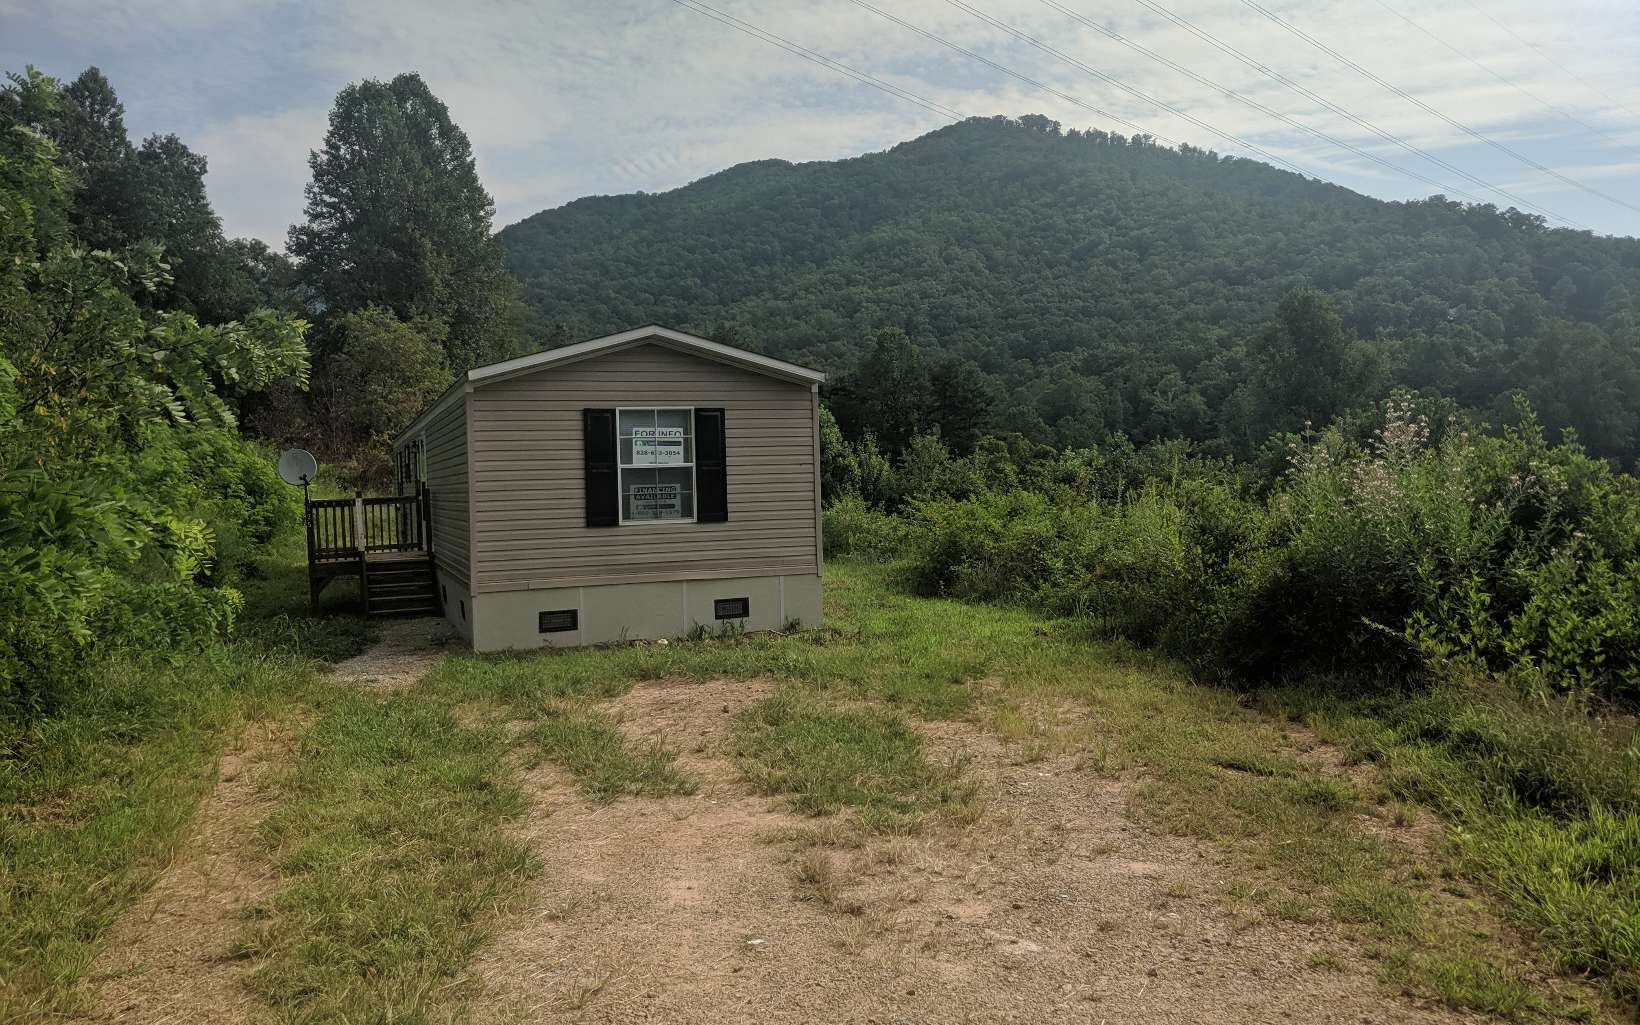 North Georgia Mountain Foreclosure Cabins/Homes